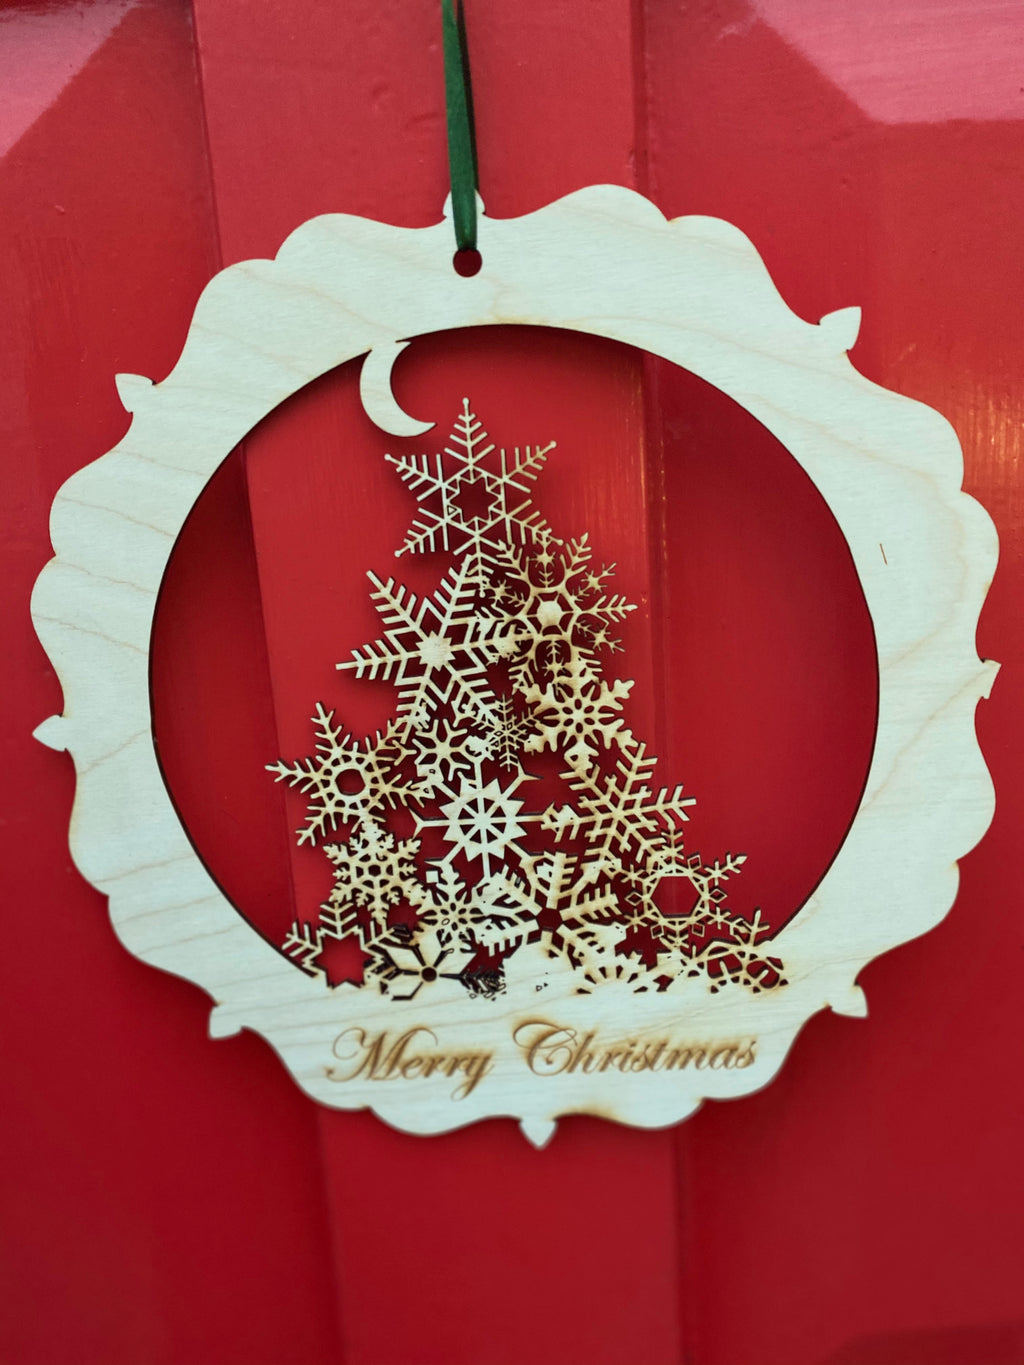 Intricate snowflake Tree Door Wreath